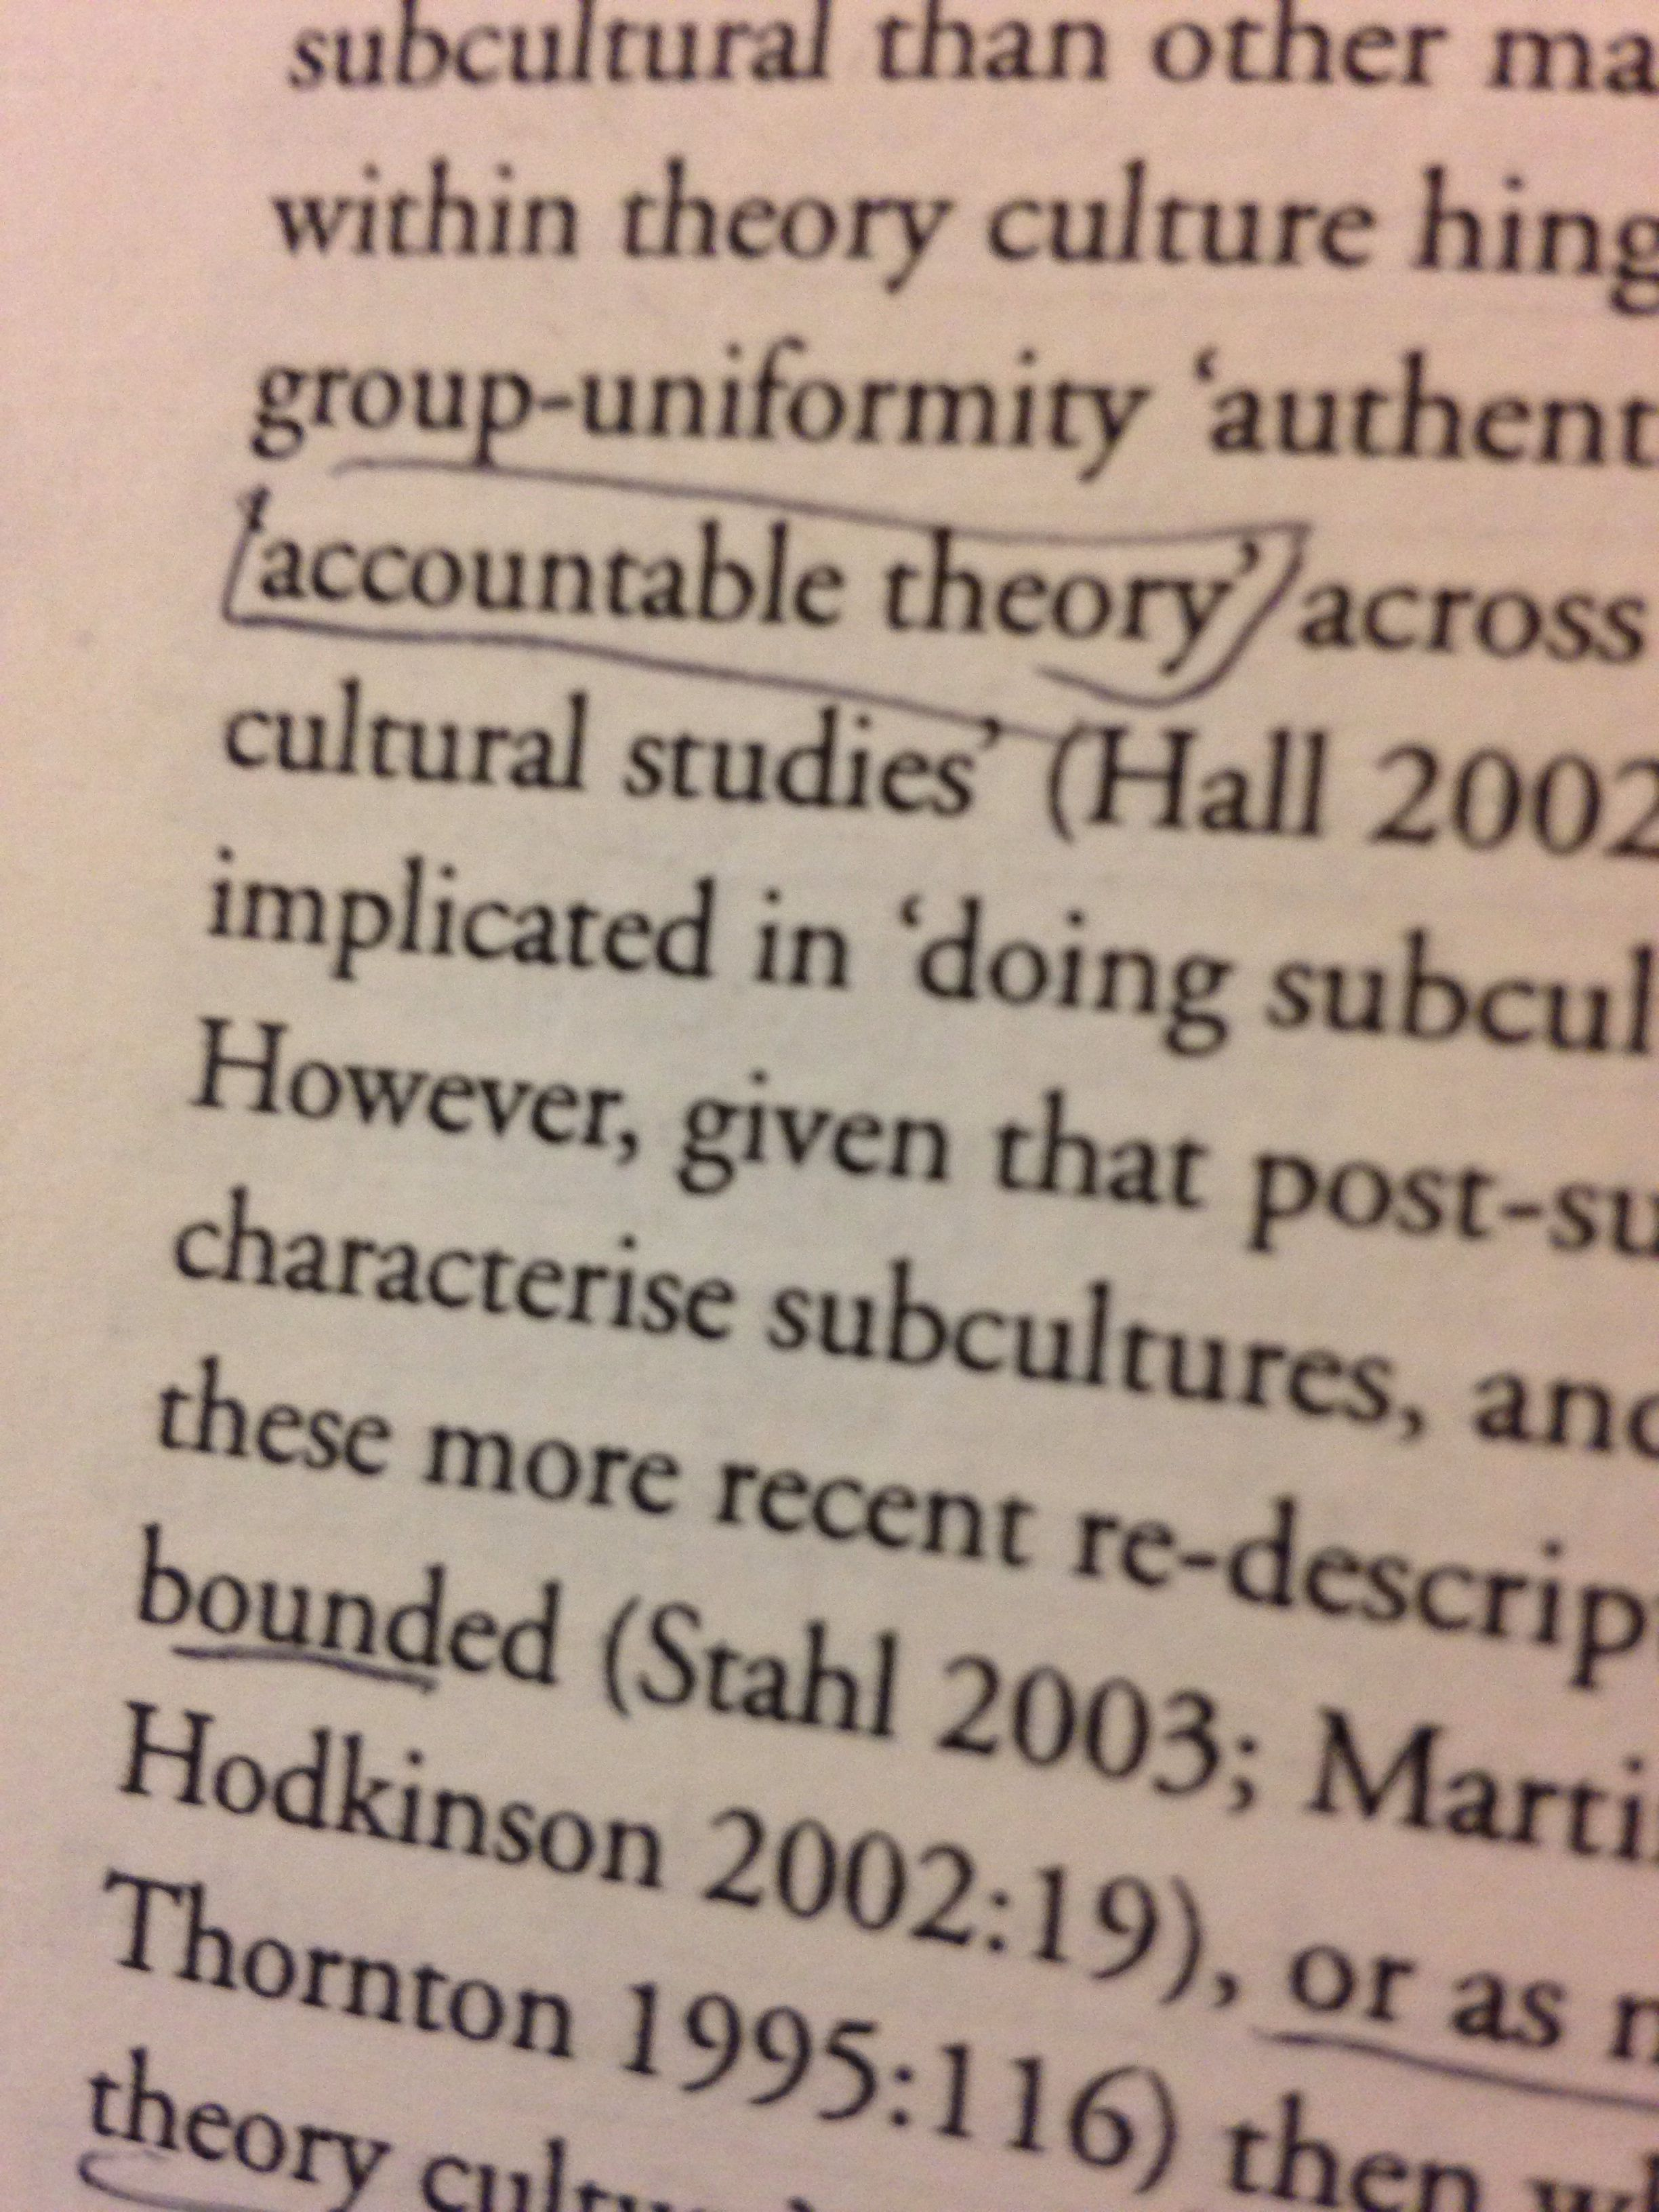 Accountable theory: using the same framework to consider yourself that you use to consider the subject of your study. (Matt Hills, How to Do Things With Cultural Theory.)